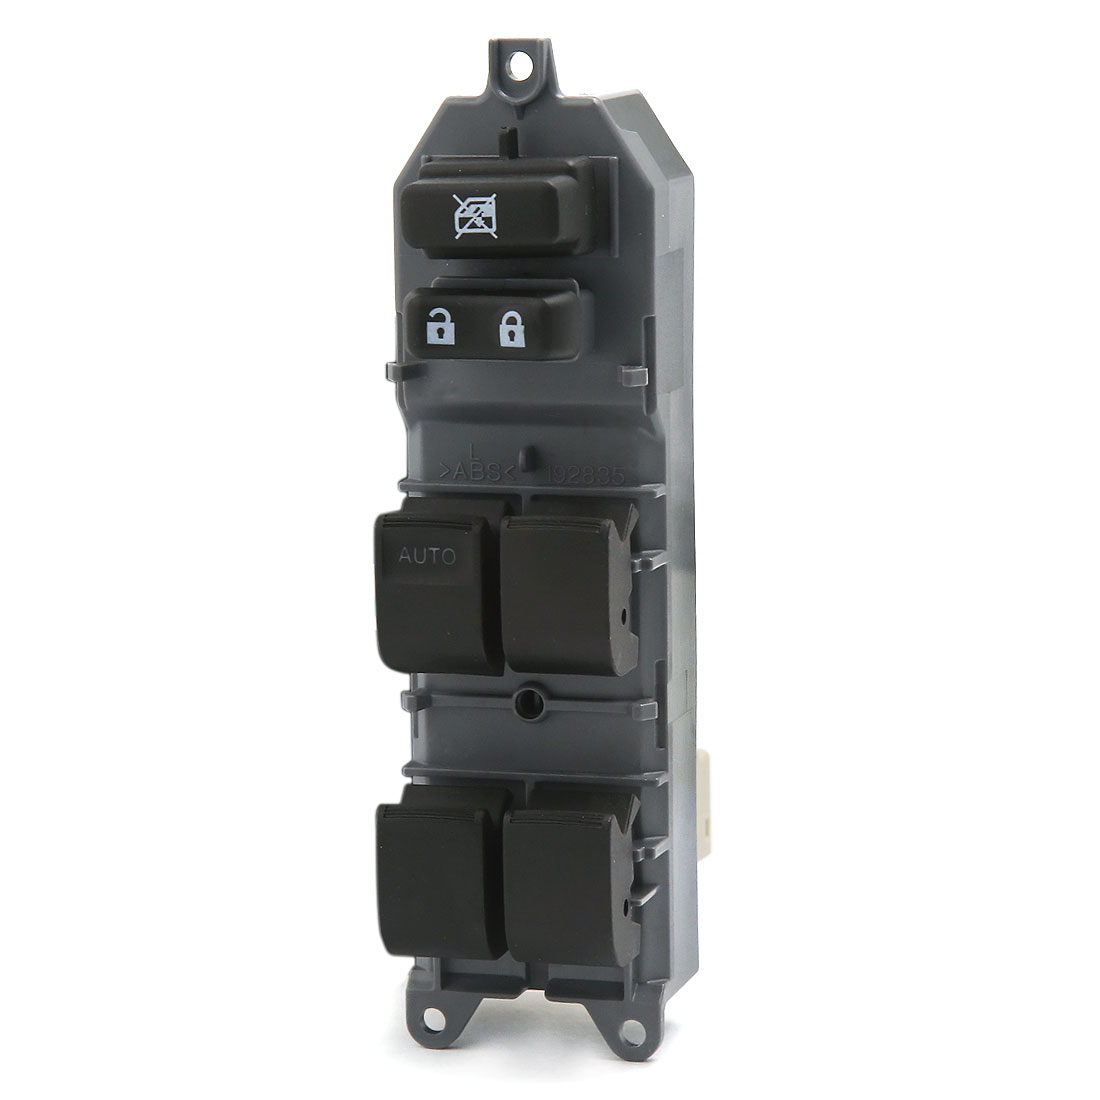 Front Left Electric Window Master Switch 84820-06100 Fits Toyota Corolla Camry Yaris RAV 4